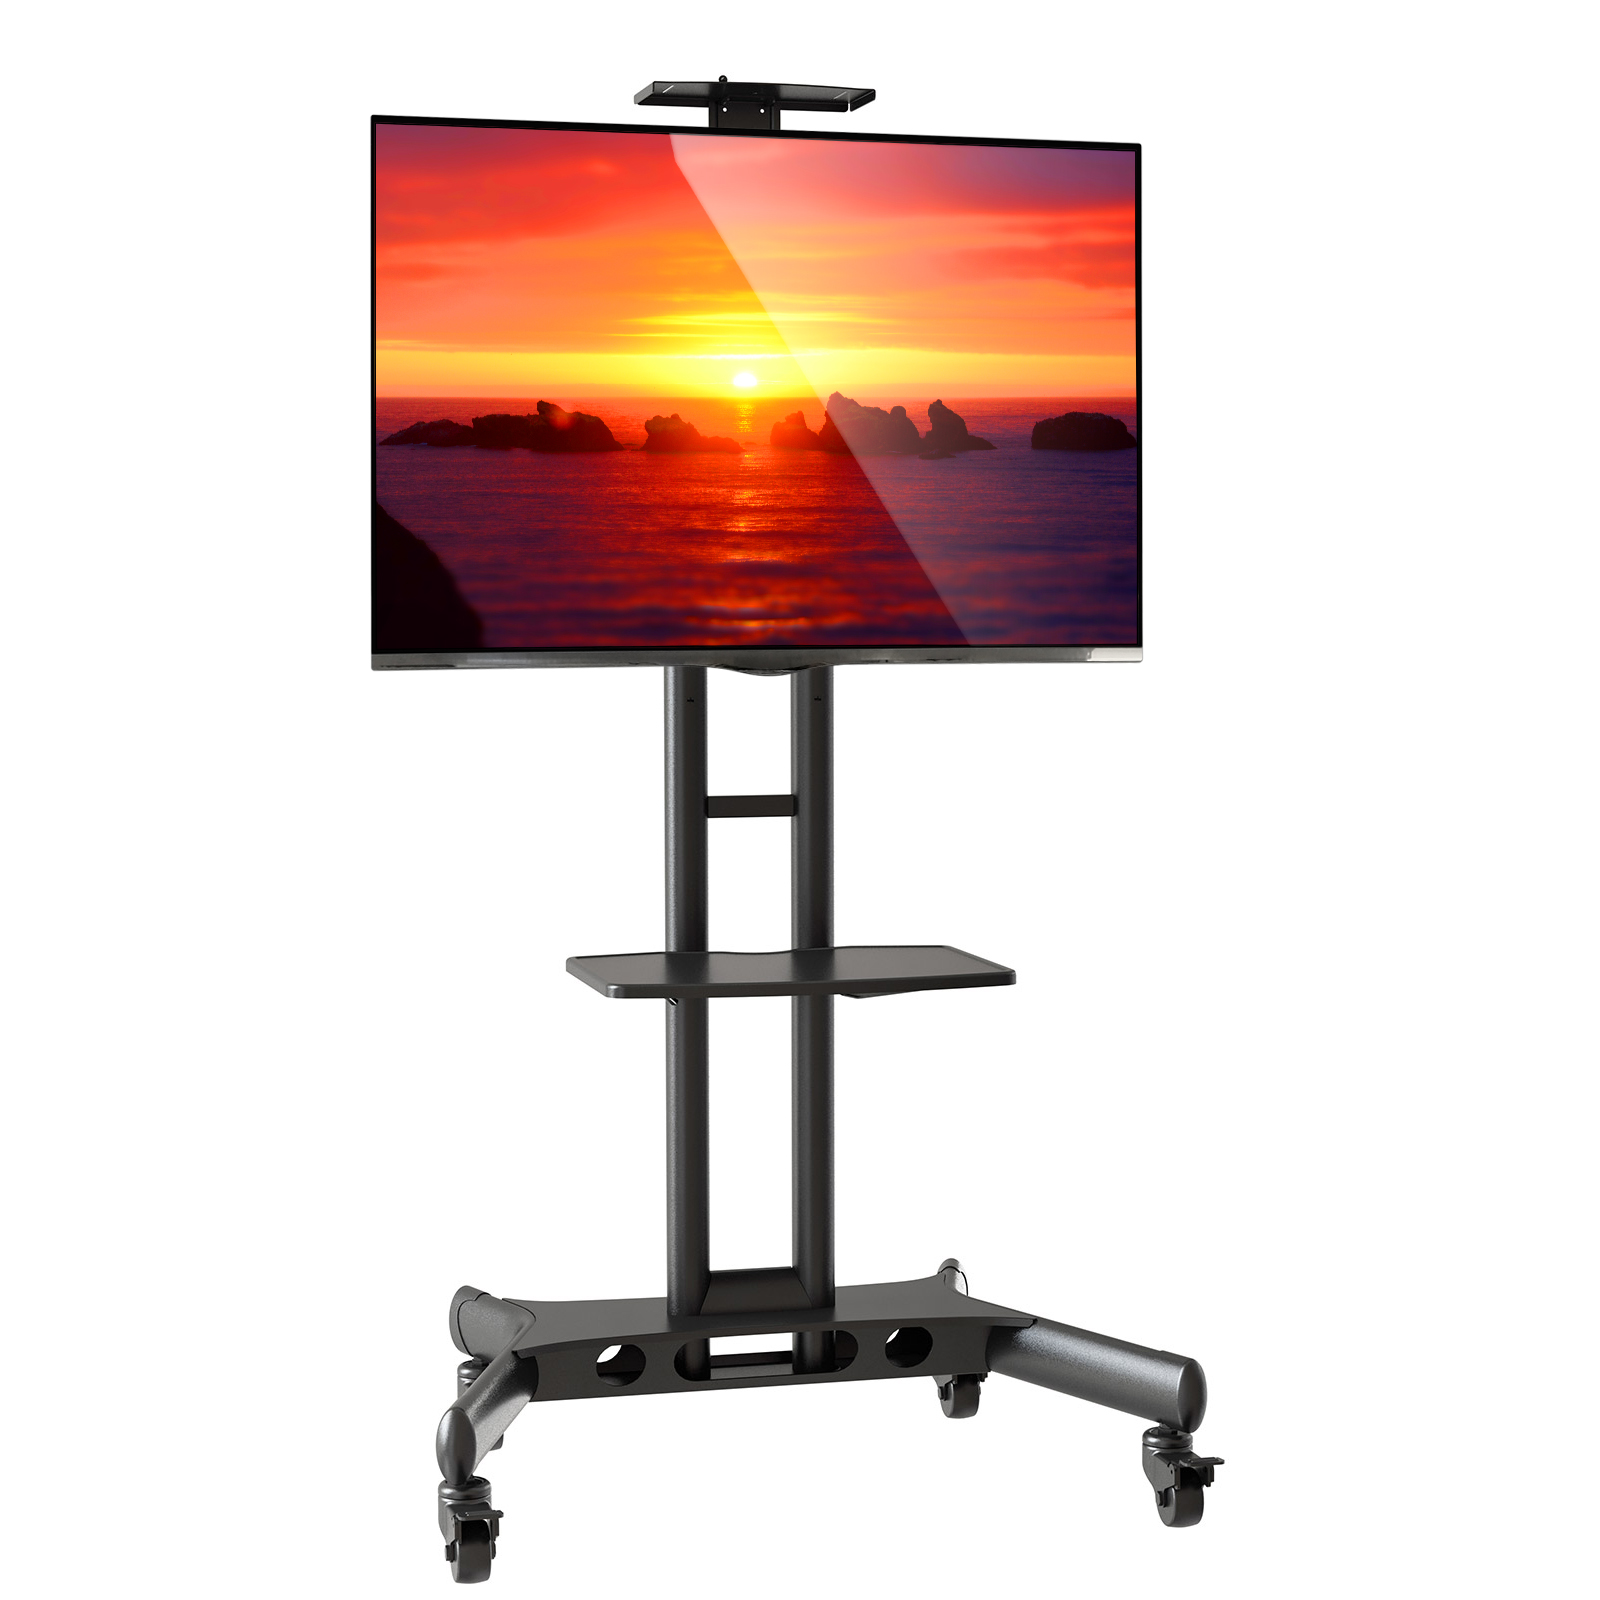 Mount Factory Rolling TV Stand Mobile TV Cart for 40-65 inch Flat Screen, LED, LCD, OLED, Plasma, Curved TV's... by Mount Factory